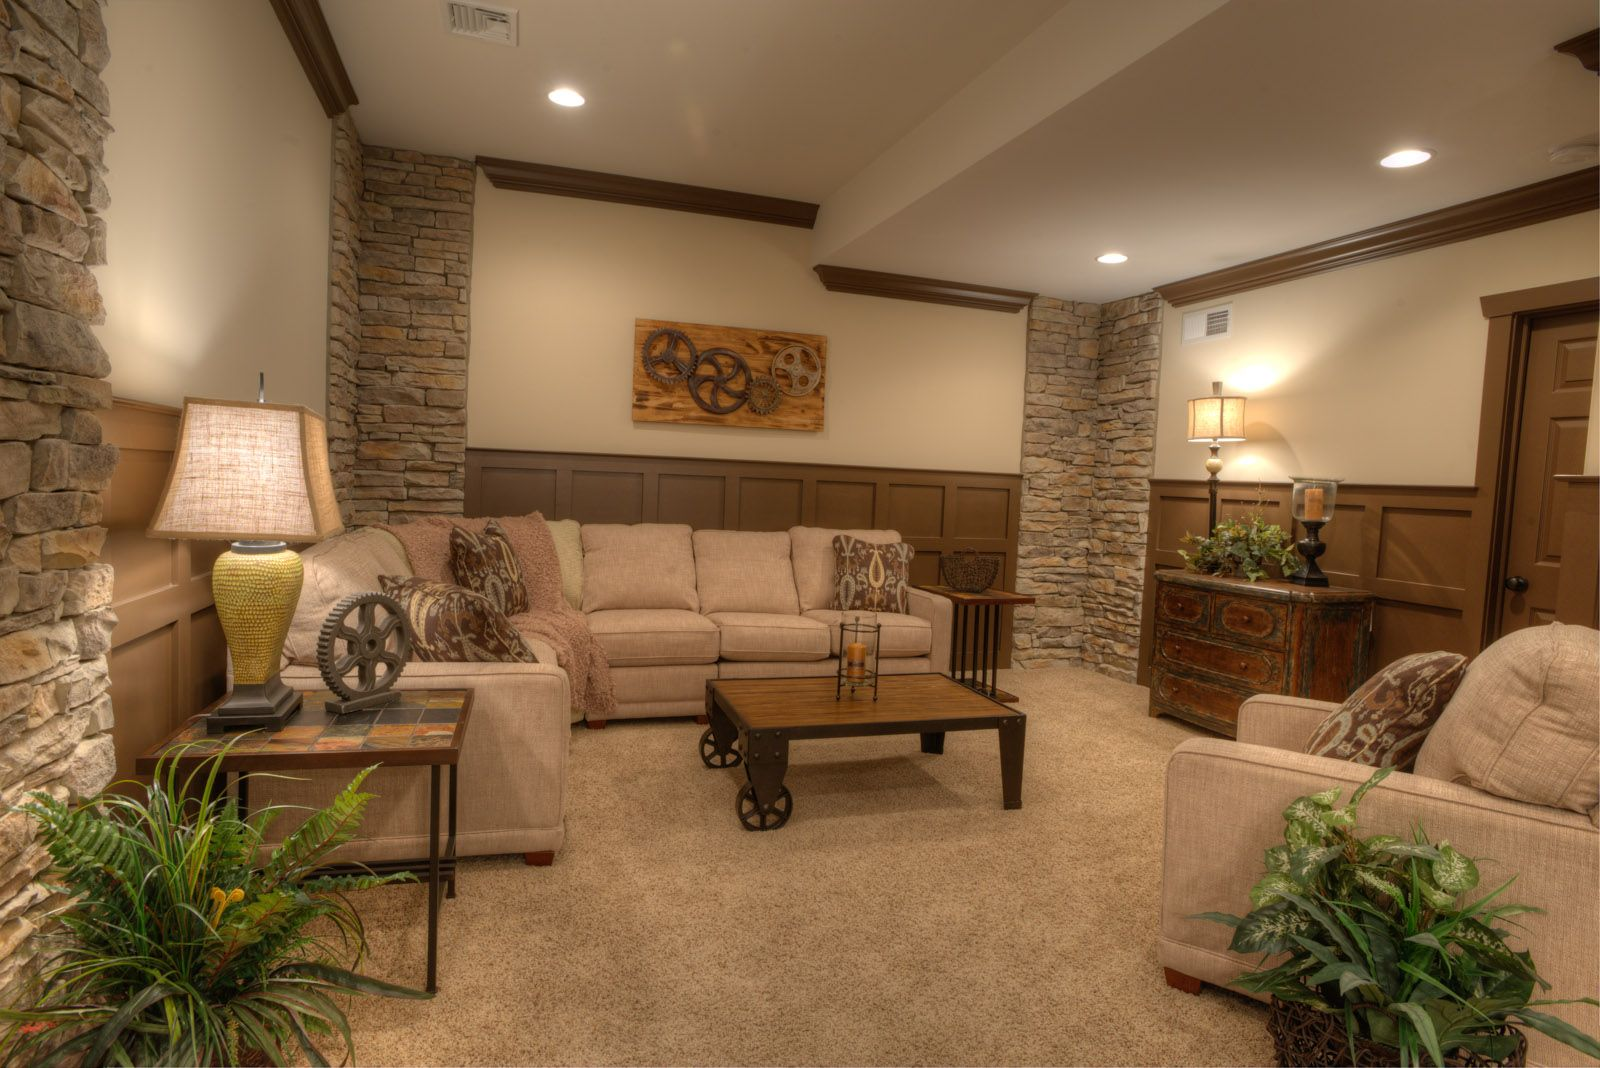 Finished Basement With Stone Accent Walls And Sable Wainscoting Ownalandmark Projectdreamhouse Finishing Basement Home House